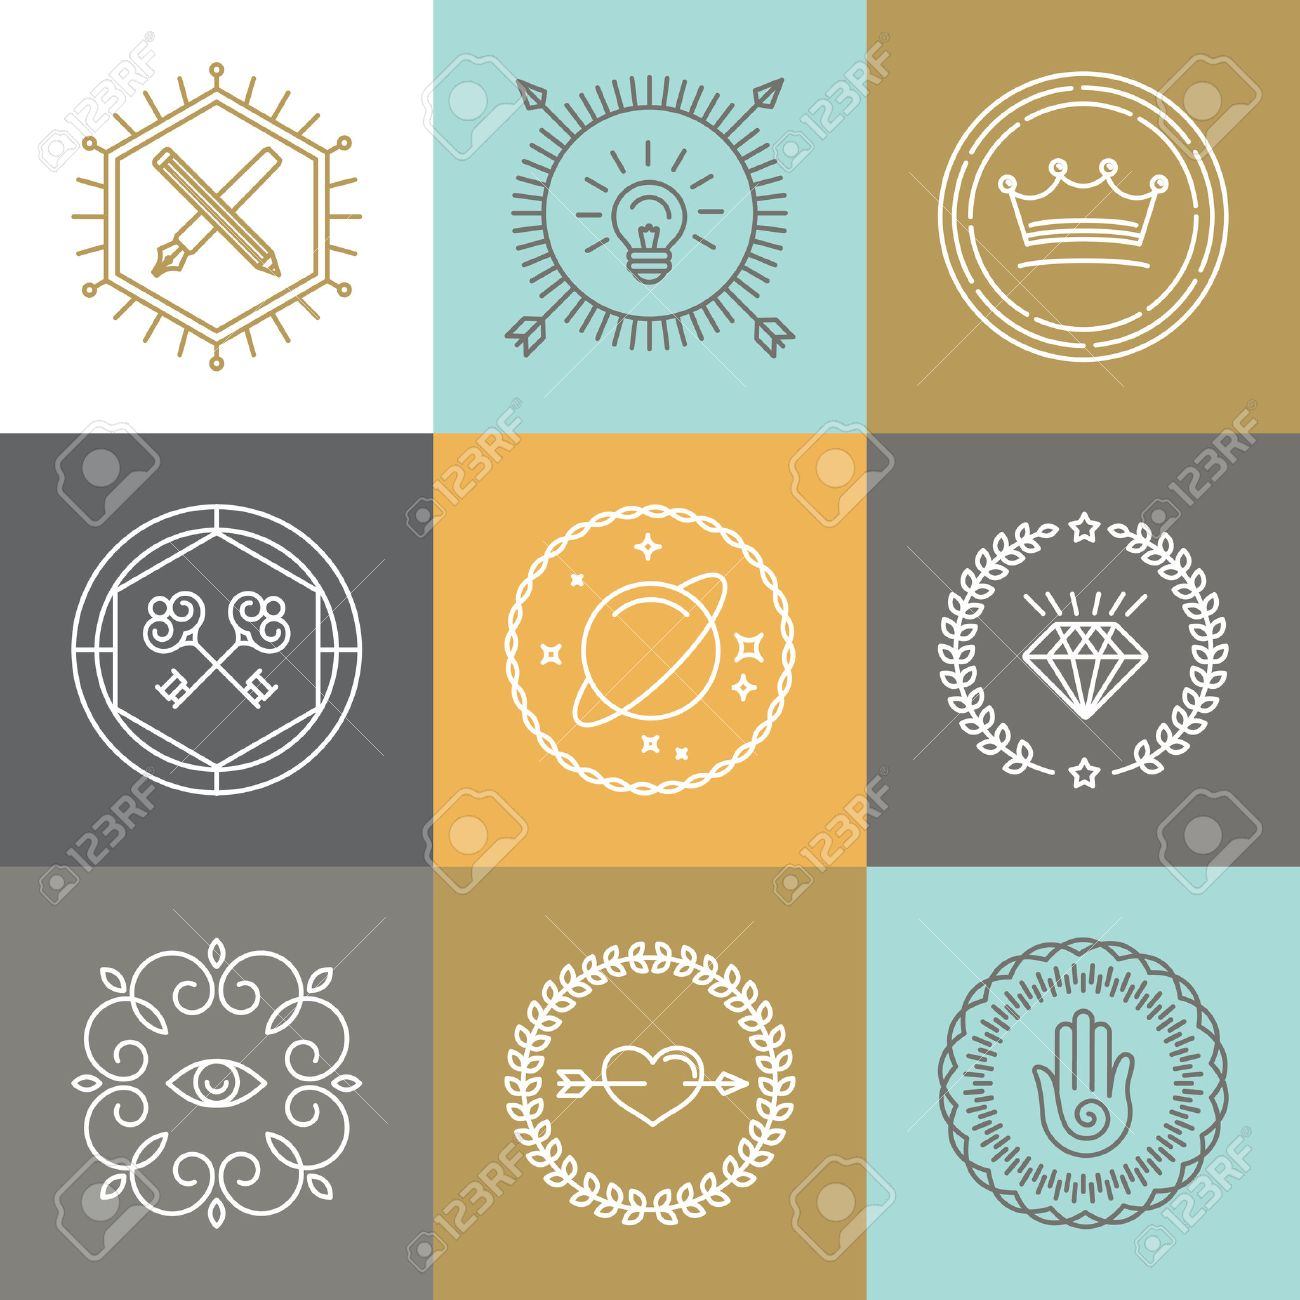 vector abstract hipster signs and logo design elements in linear